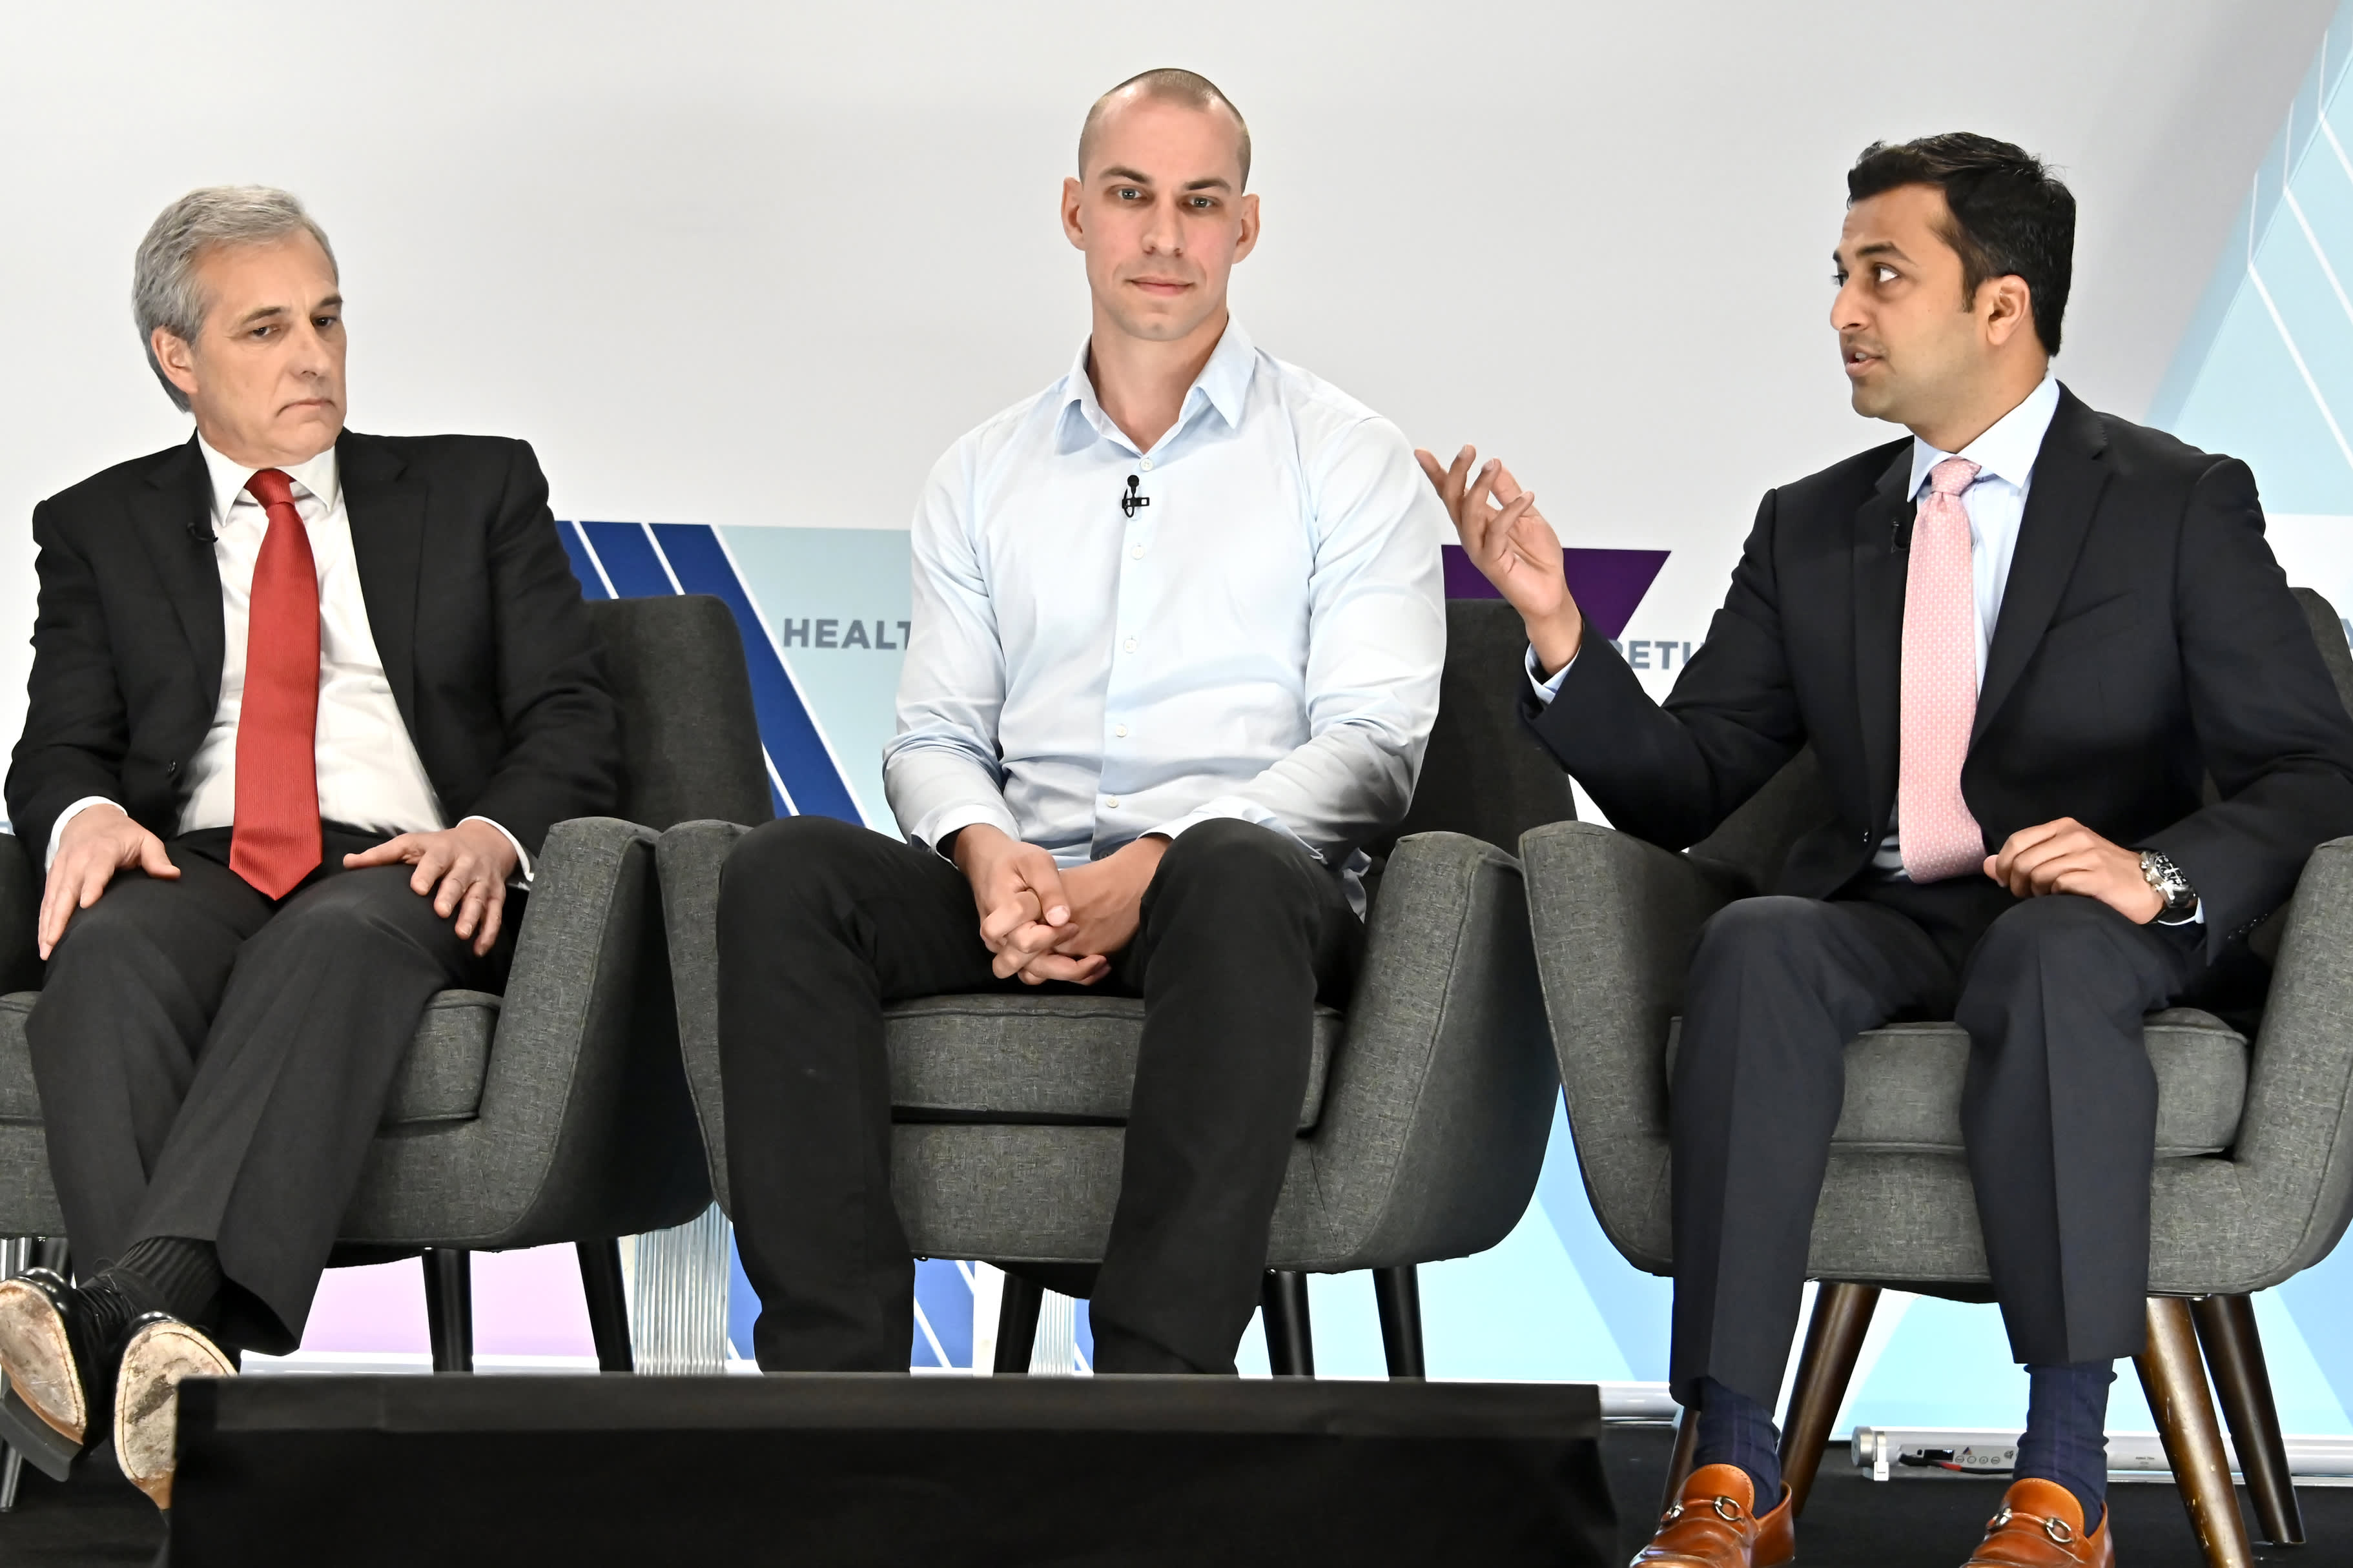 "Dr. William Hurlbut, Paul Dabrowski and Dr. Samarth Kulkarni during a panel discussion "" Genetics, CRISPR and Medical Ethics"" at the CNBC Healthy Returns conference in New York on May 21, 2019."